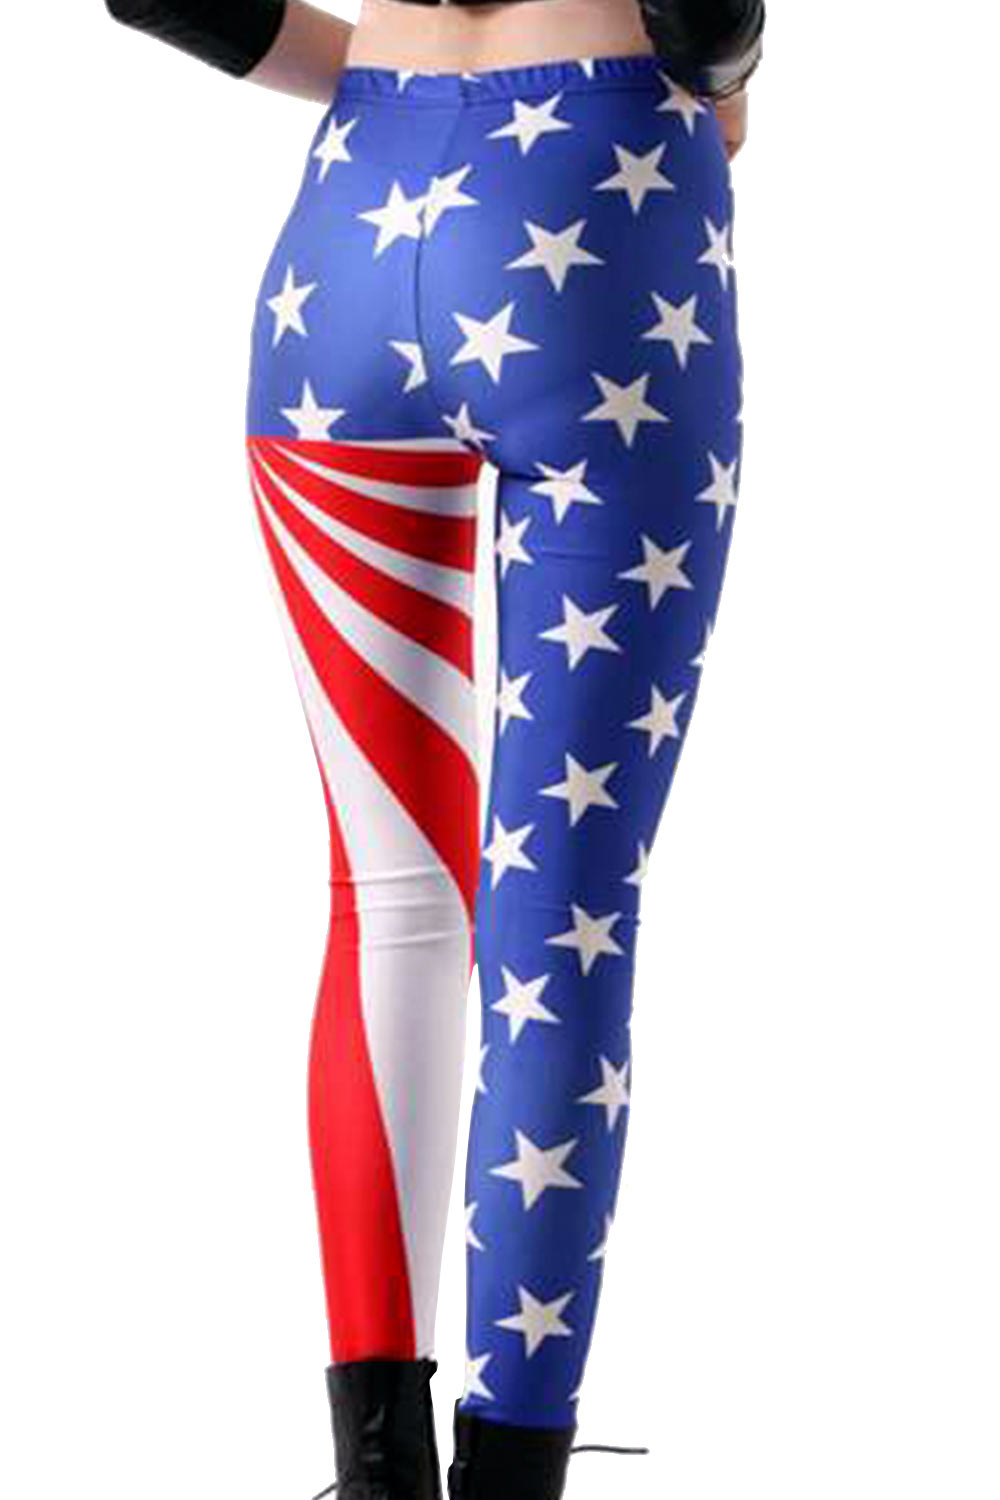 Star Spangled Banner Tights